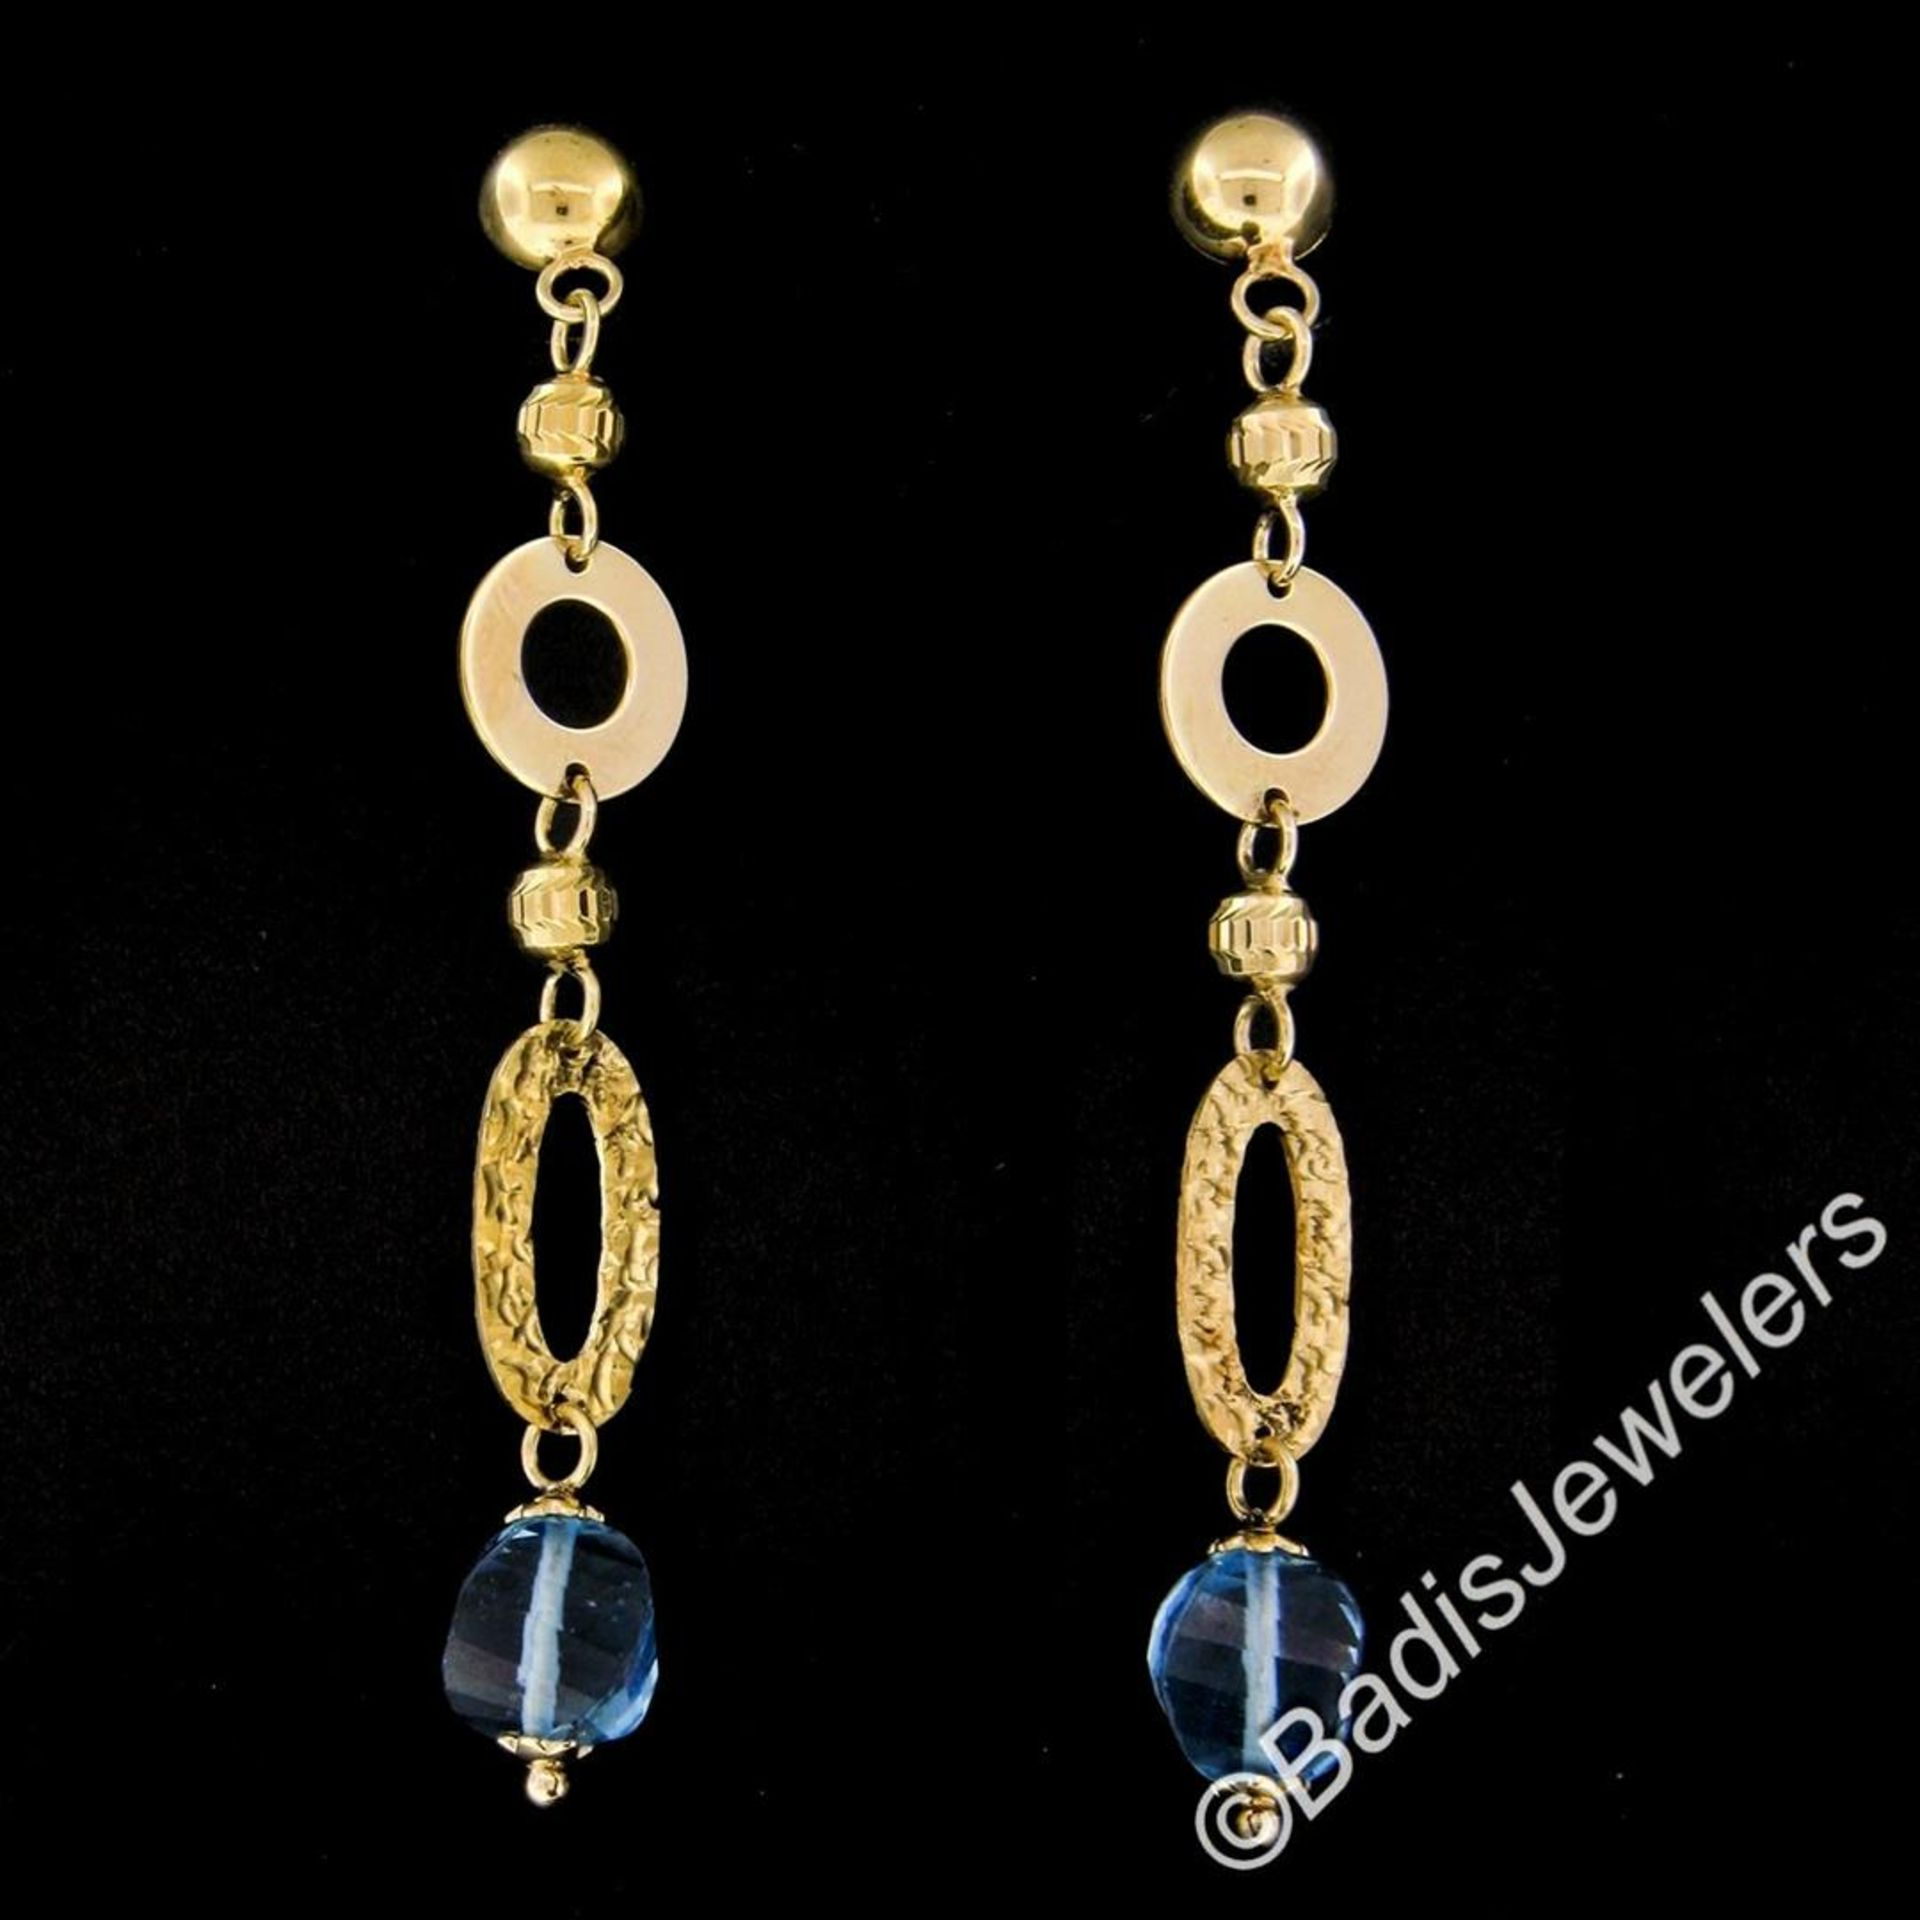 14kt Yellow Gold Briolette Cut Blue Topaz Bead Long Textured Dangle Earrings - Image 2 of 6